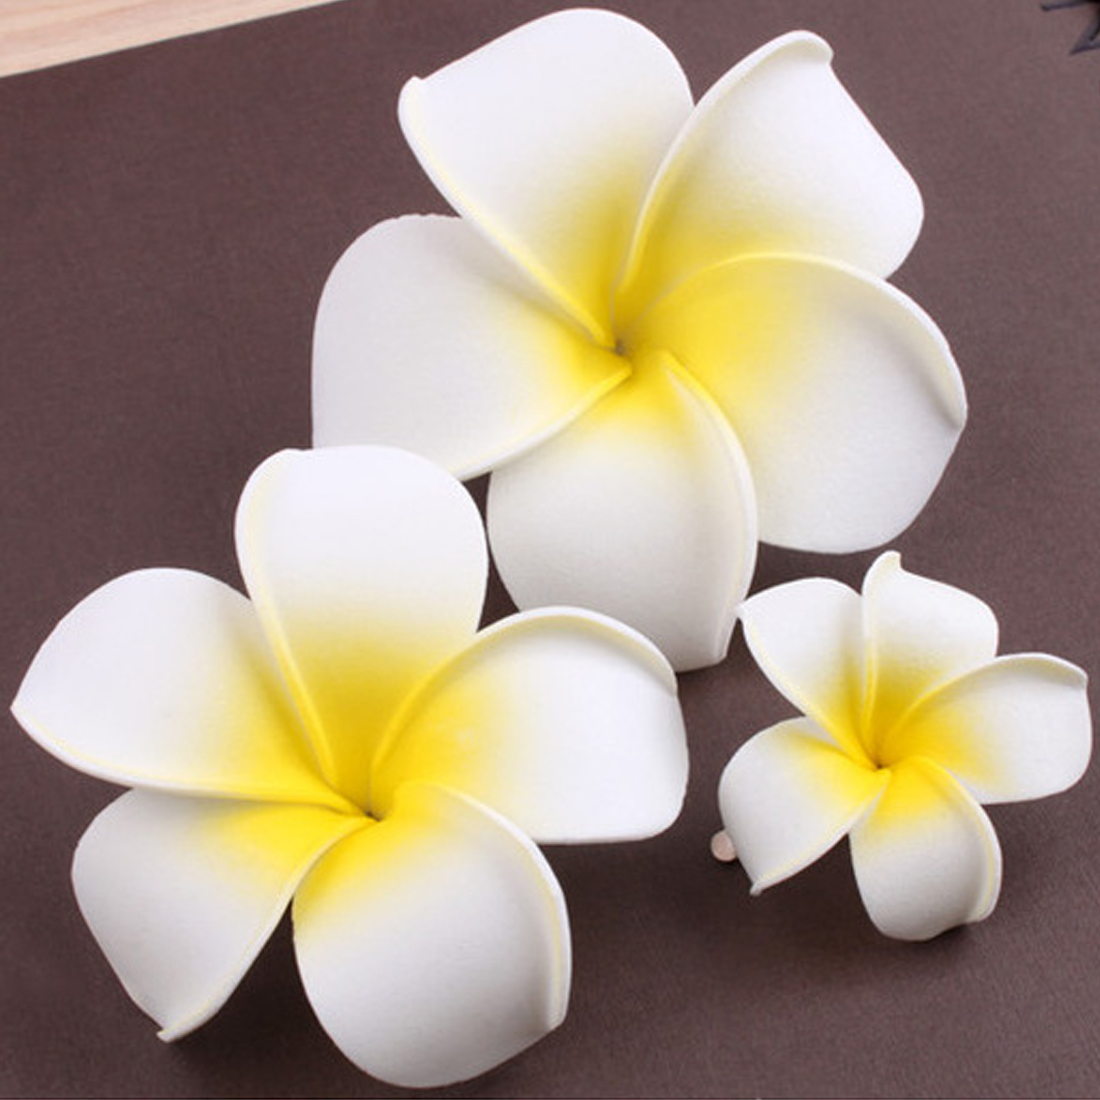 Plumeria Flower Hairpin Bohemian Frangipani Hair Clip Bridal Hair Pins Bohemia Seaside Beach Accessories Gift For Girl Seaside